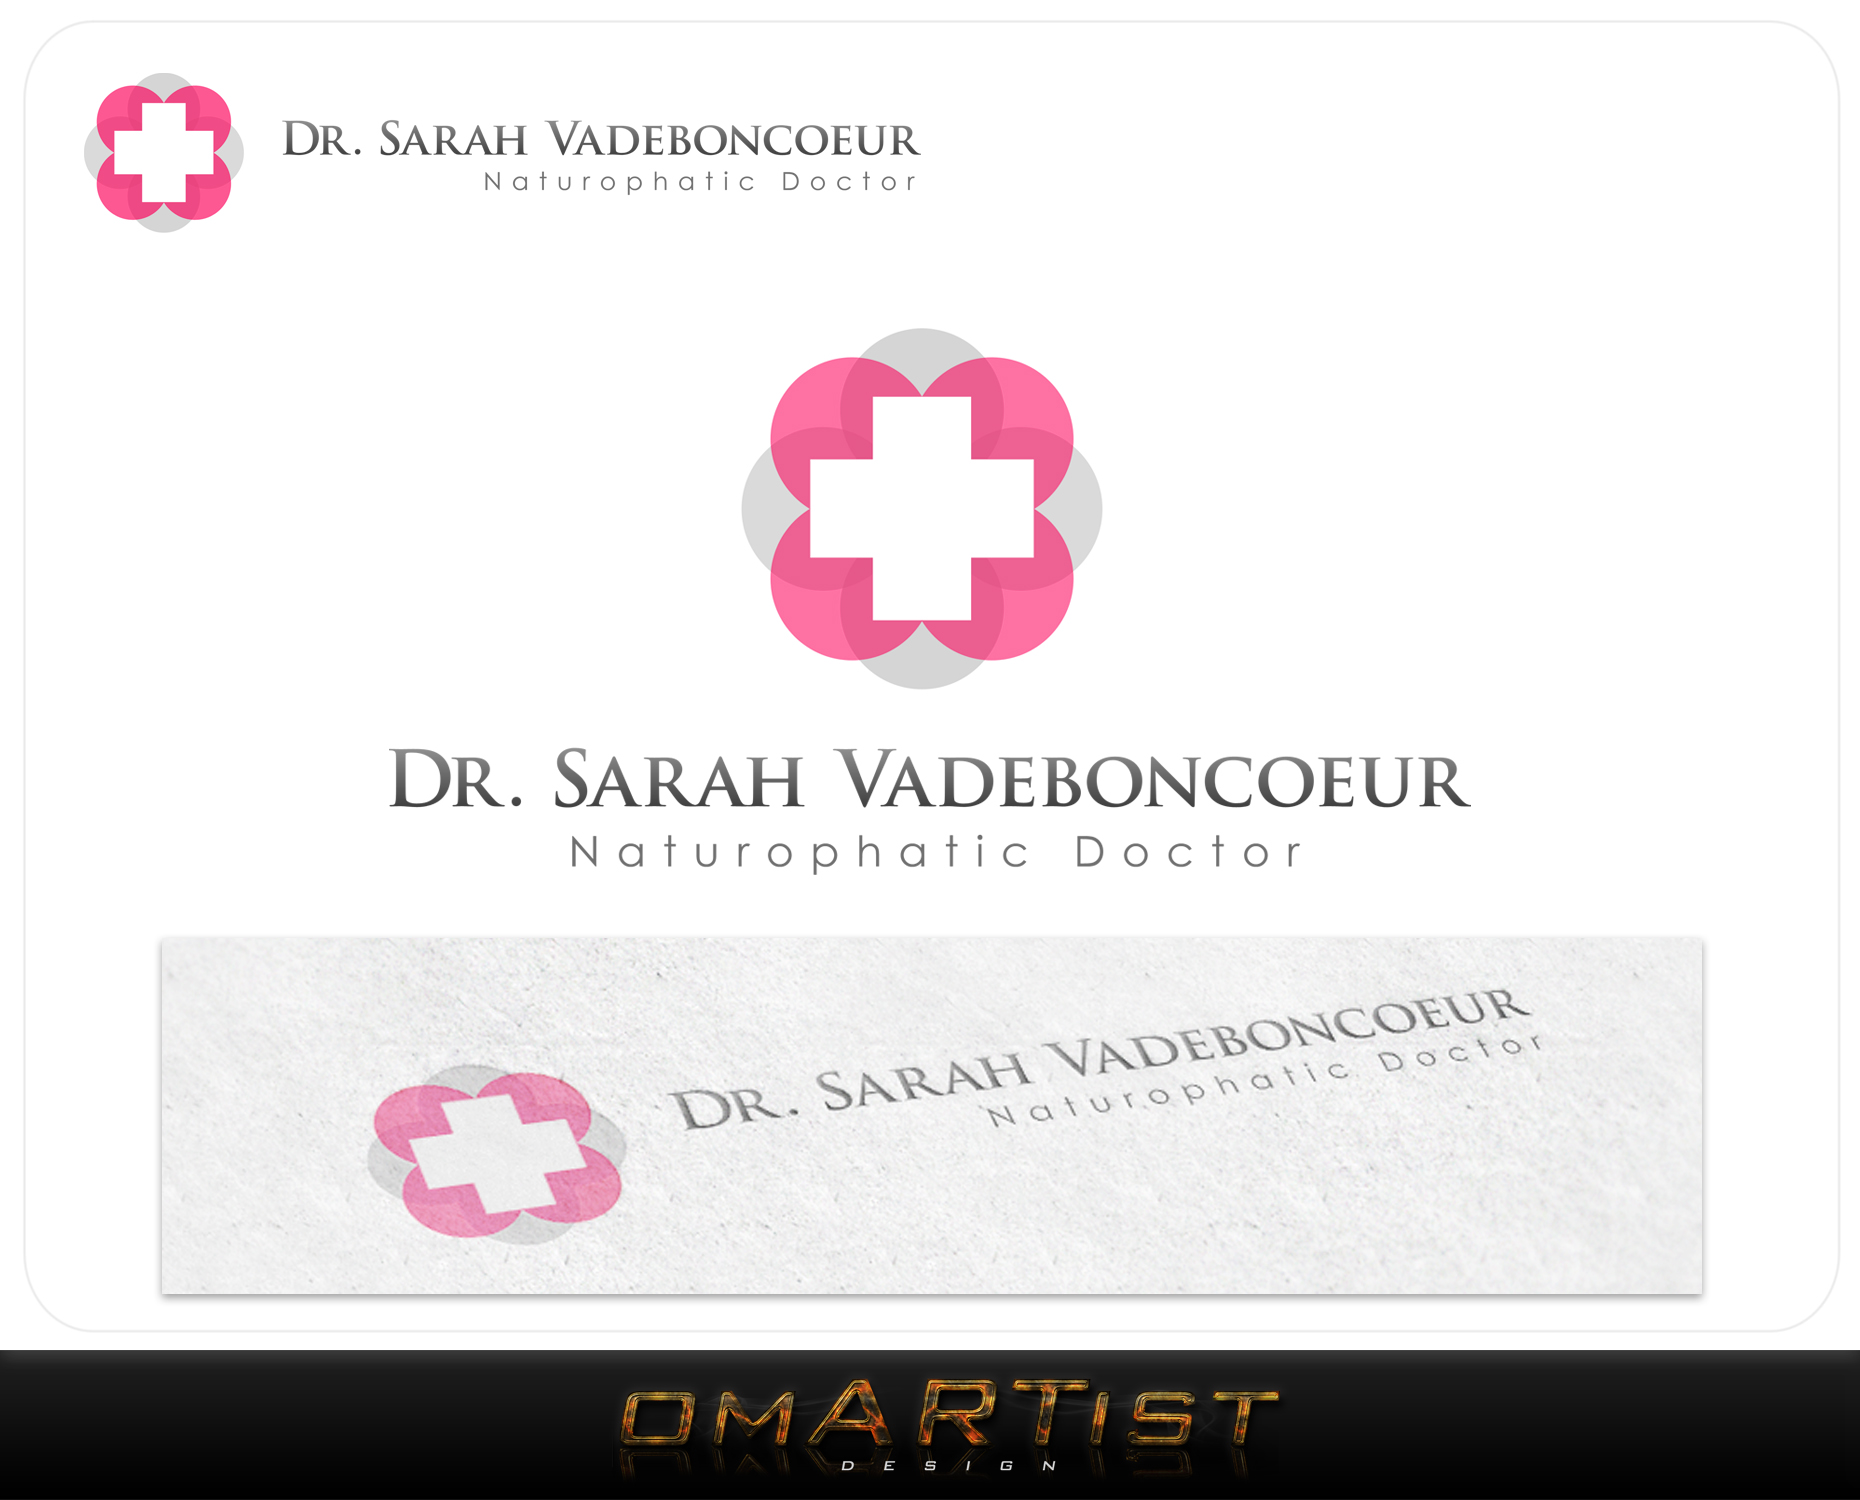 Logo Design by omARTist - Entry No. 36 in the Logo Design Contest New Logo Design for Dr. Sarah Vadeboncoeur, Naturopathic Doctor.